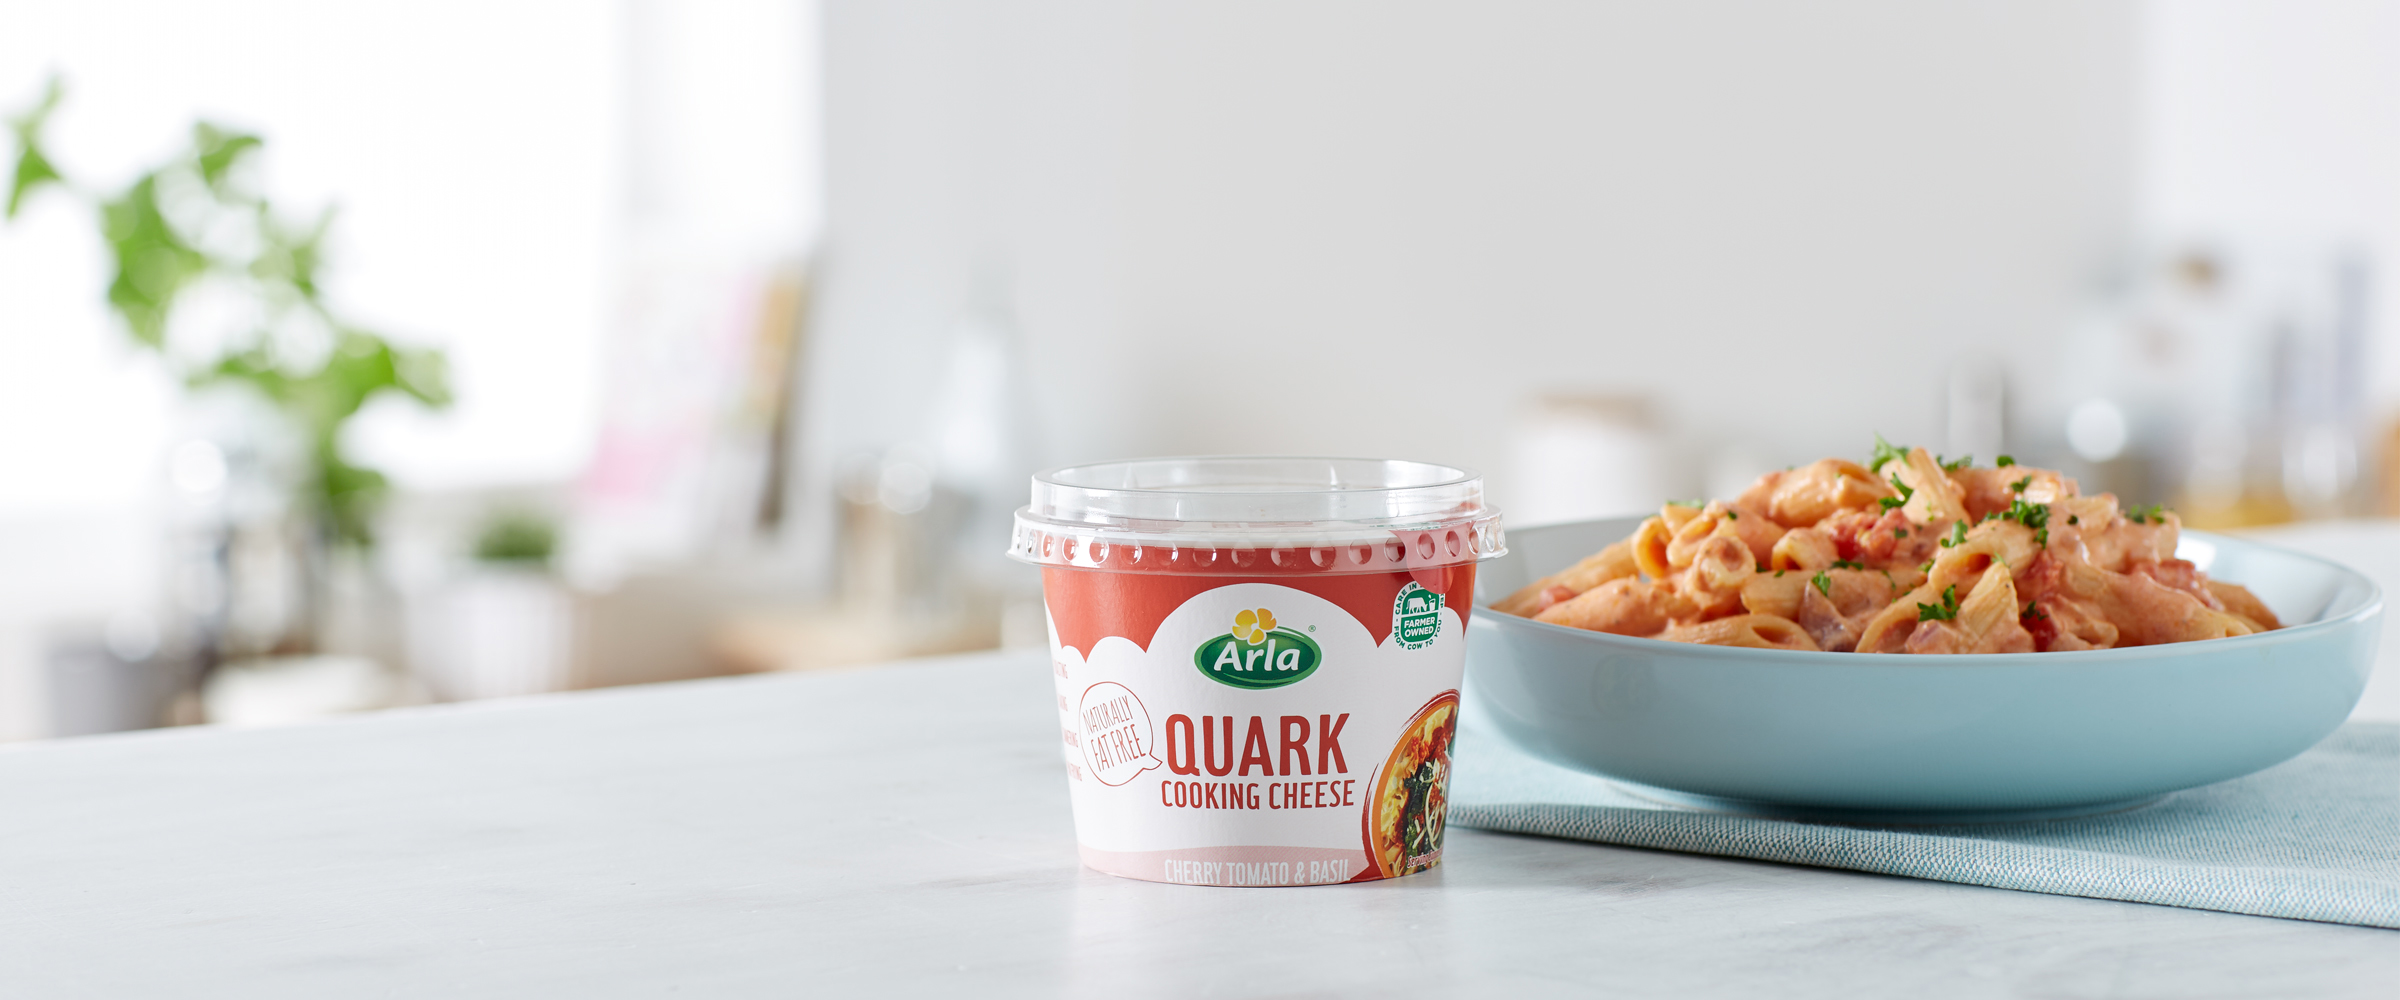 A tub of Arla Quark Cherry Tomato & Basil in front of a pasta dish